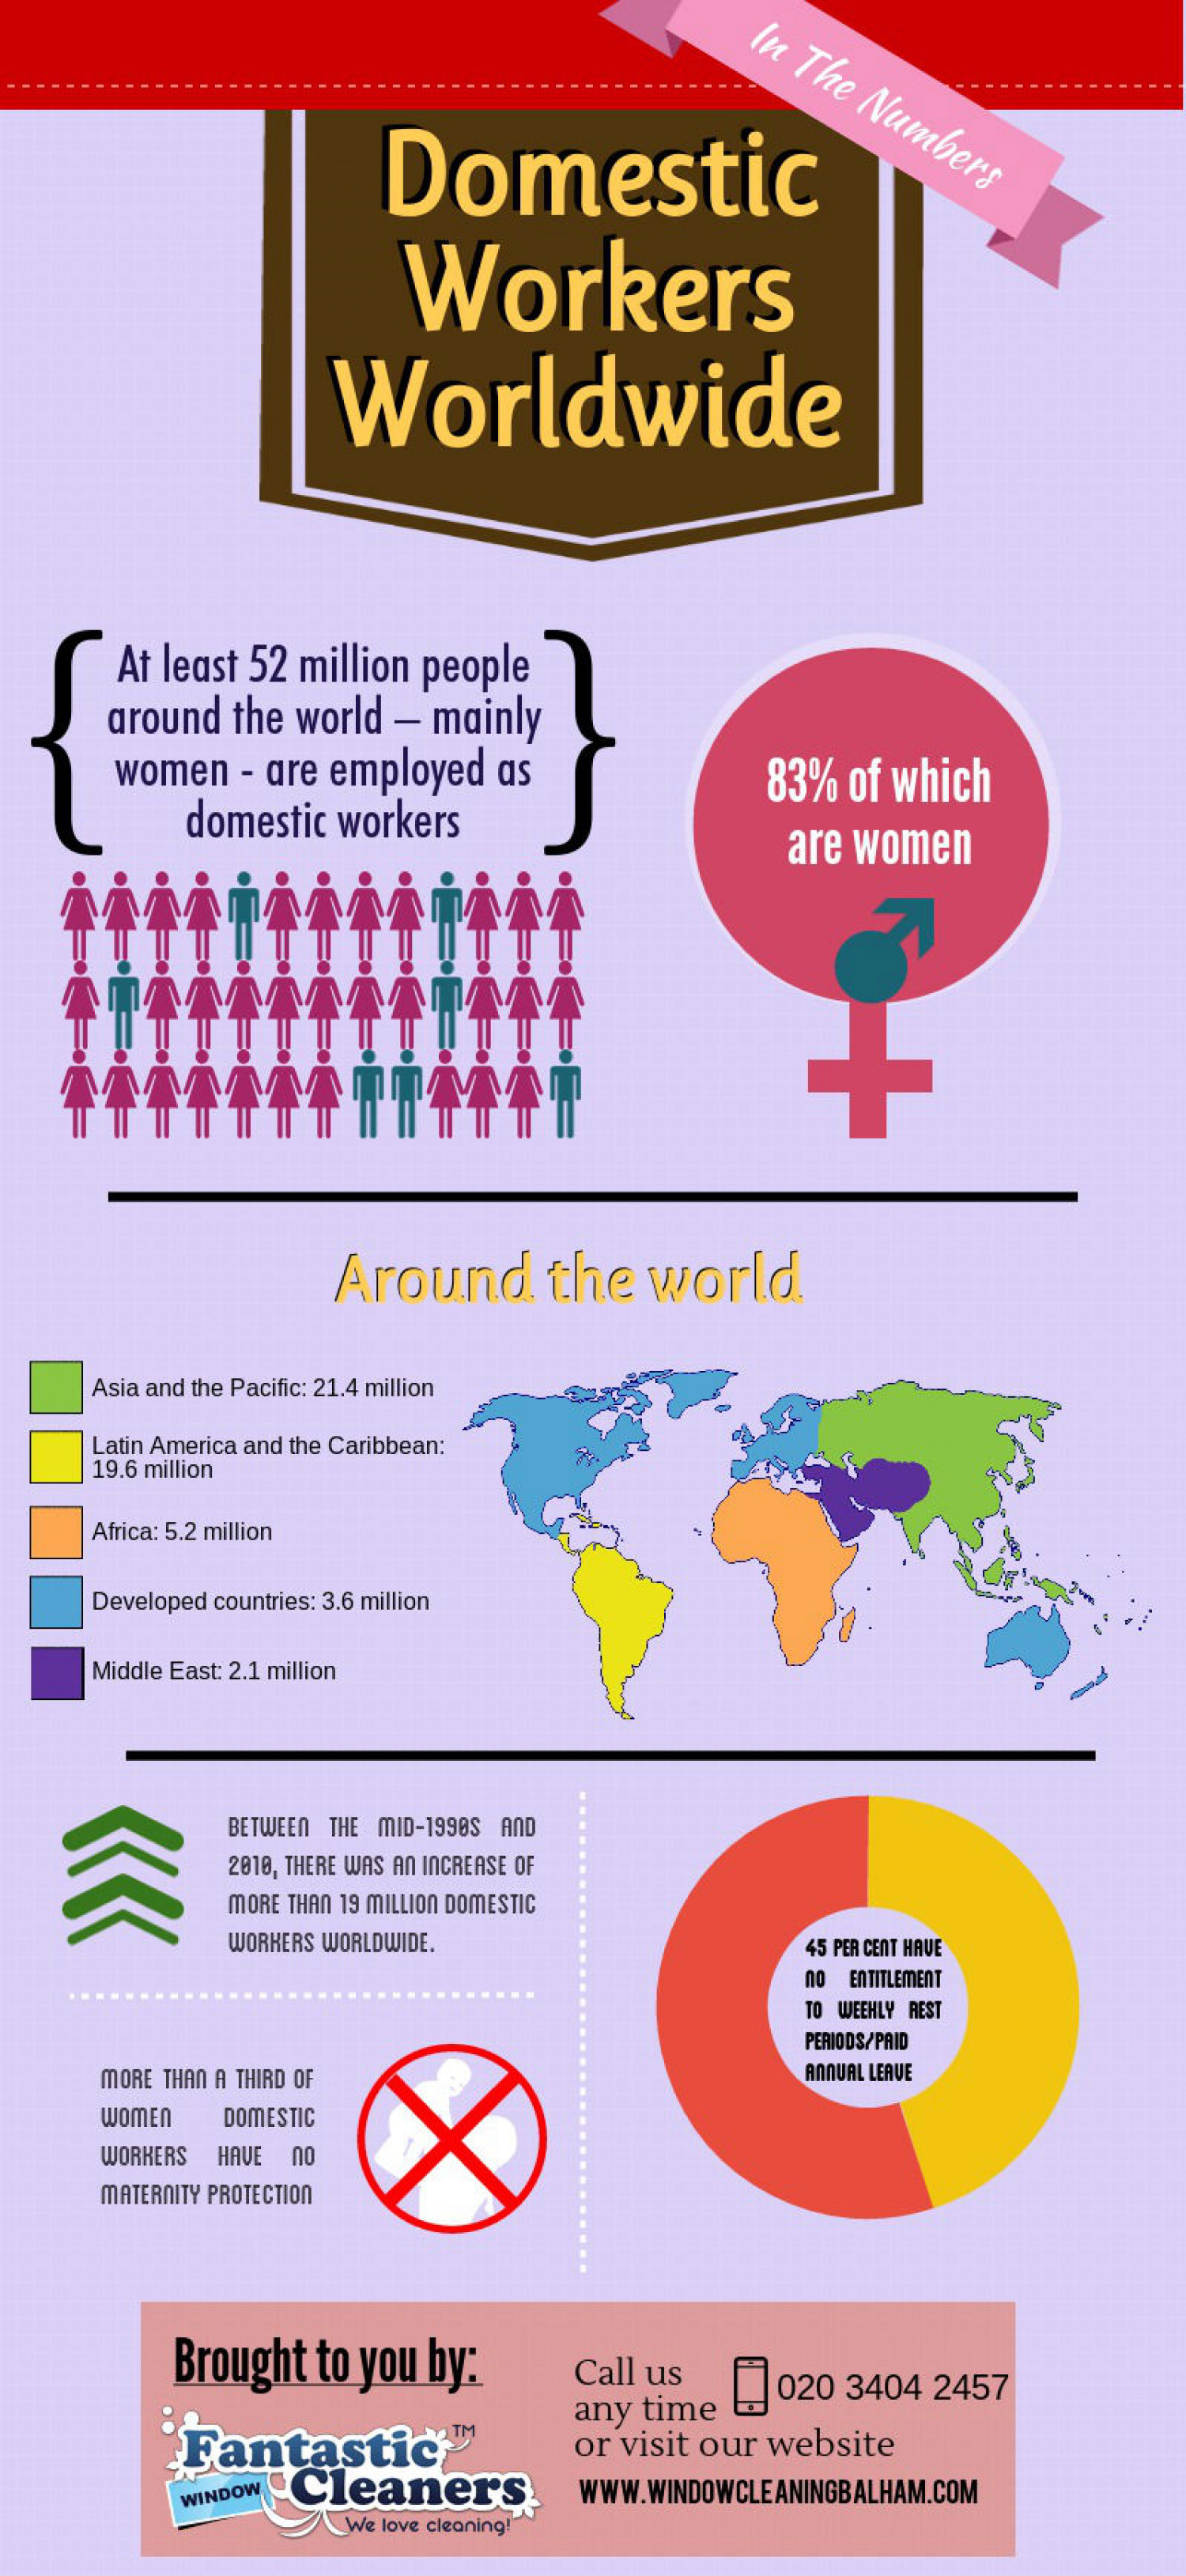 Domestic Workers Worldwide in the Numbers Infographic